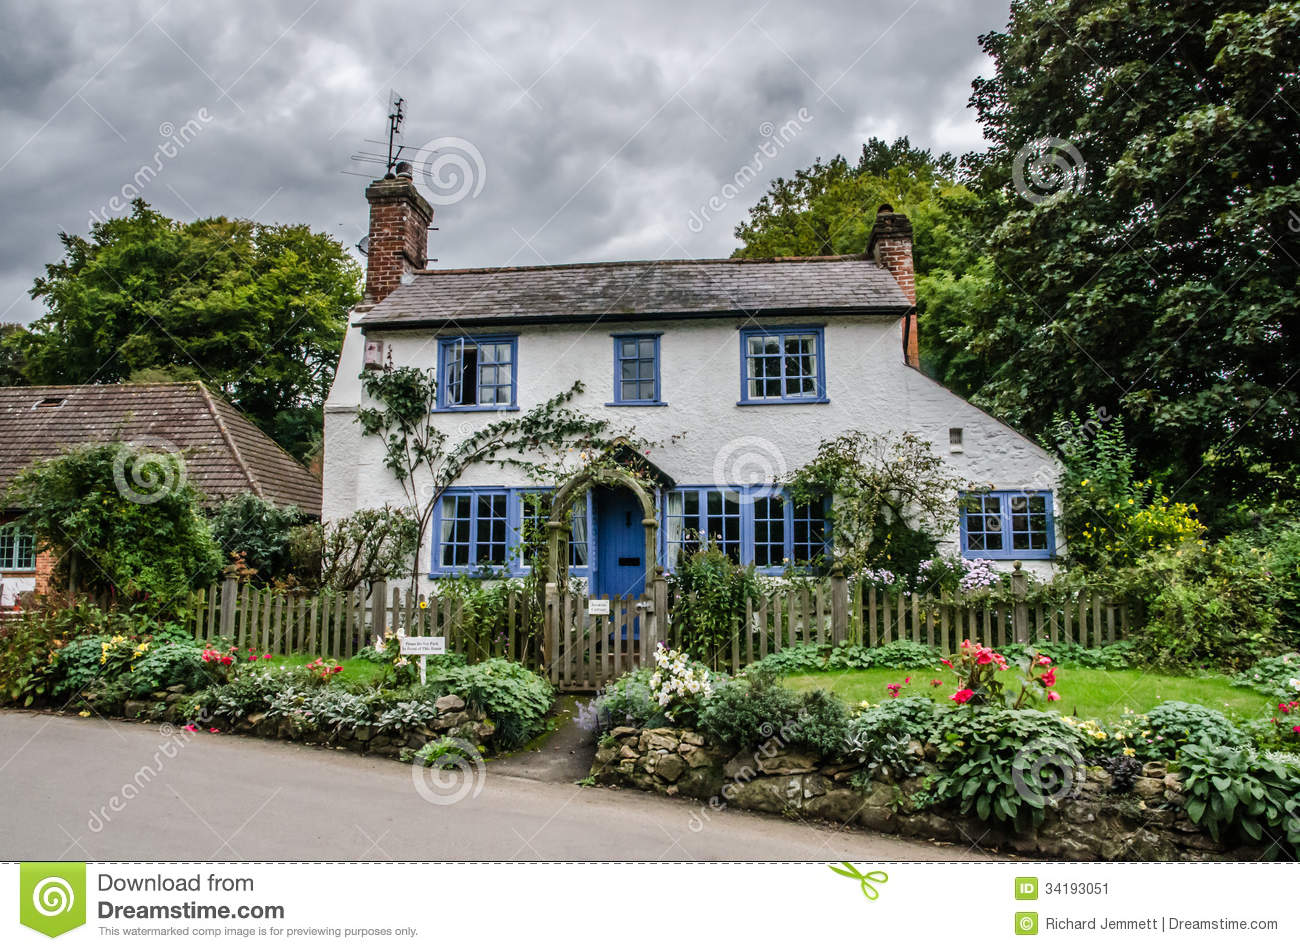 Royalty Free Stock Photography Old Cottage Lovely Chimneys Milford Surrey England Uk Image35183747 in addition Carmack likewise 147374838 as well Royalty Free Stock Photography Rustic Garden Shed Flower Boxes Image27018047 also Cottage Wallpapers. on country cottage house plans